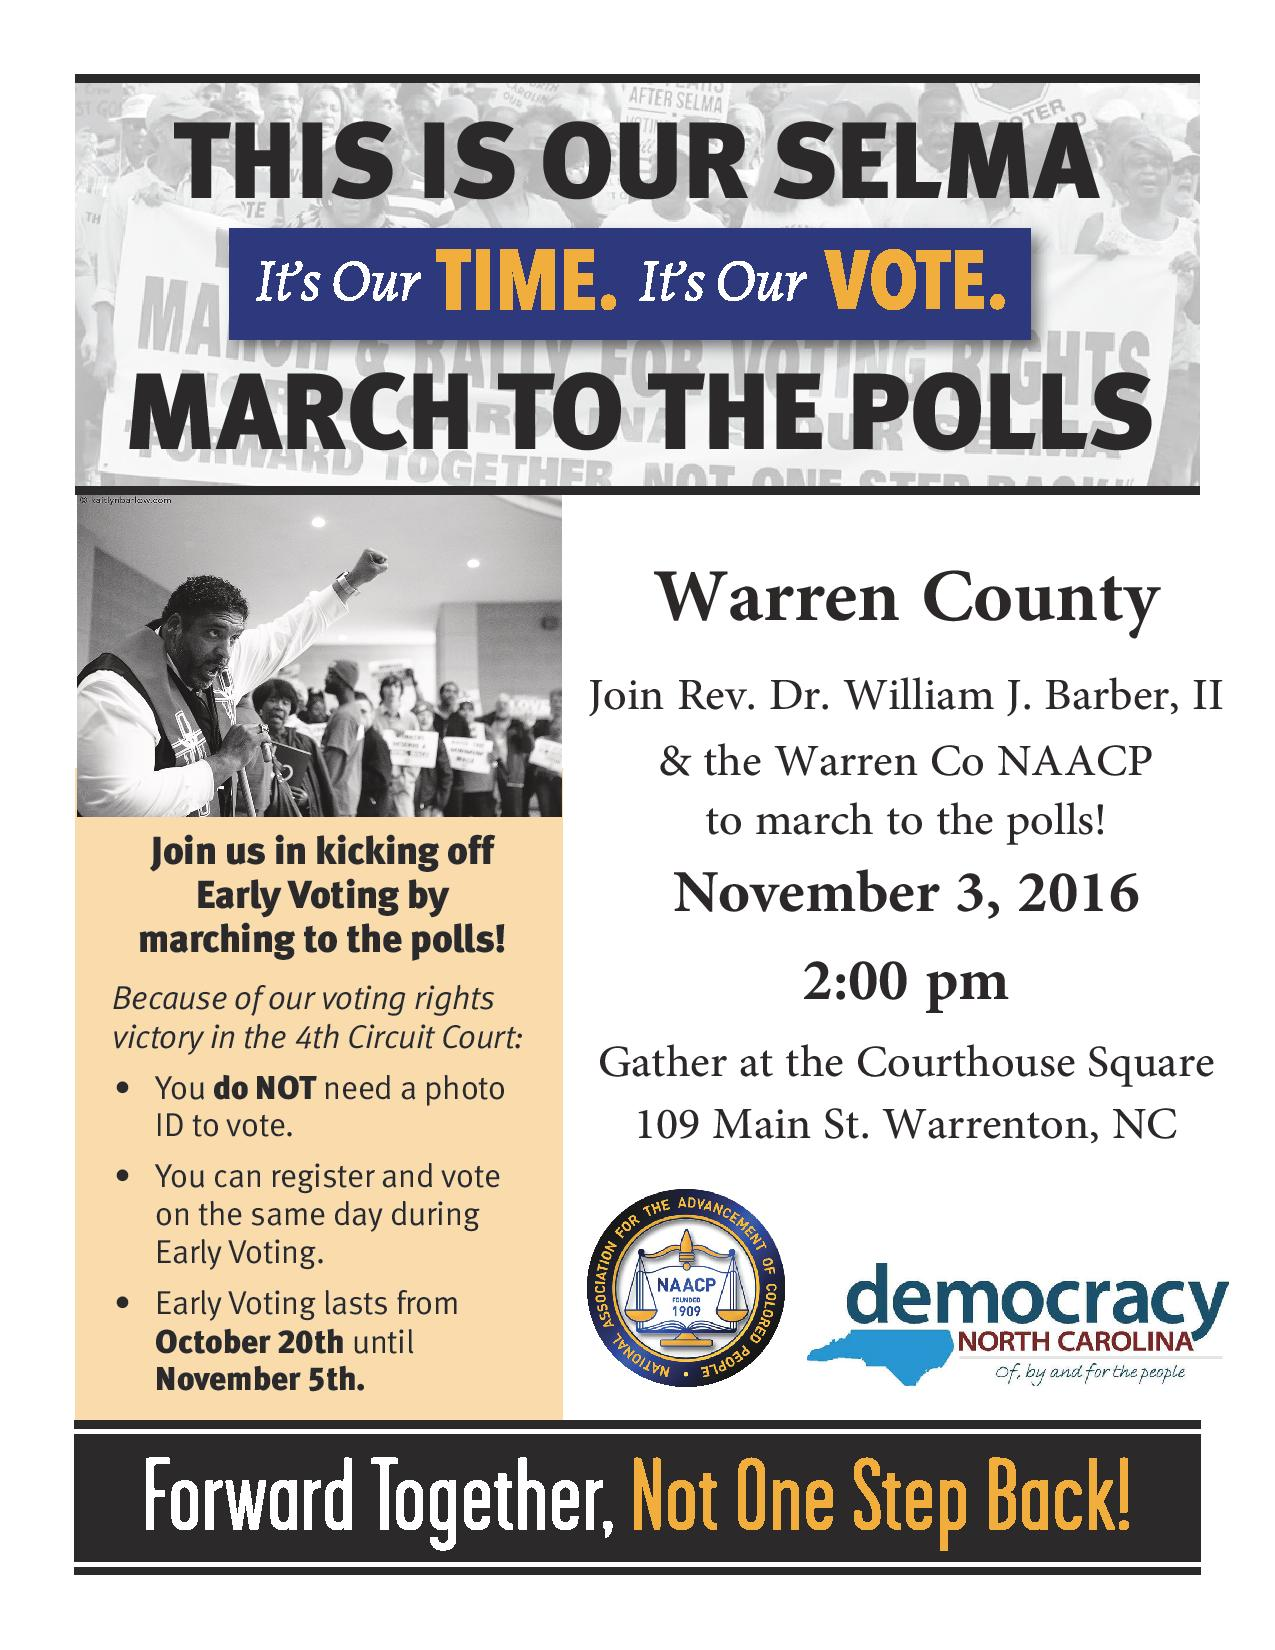 March_to_Polls_with_Rev_WarrenCo2.jpg